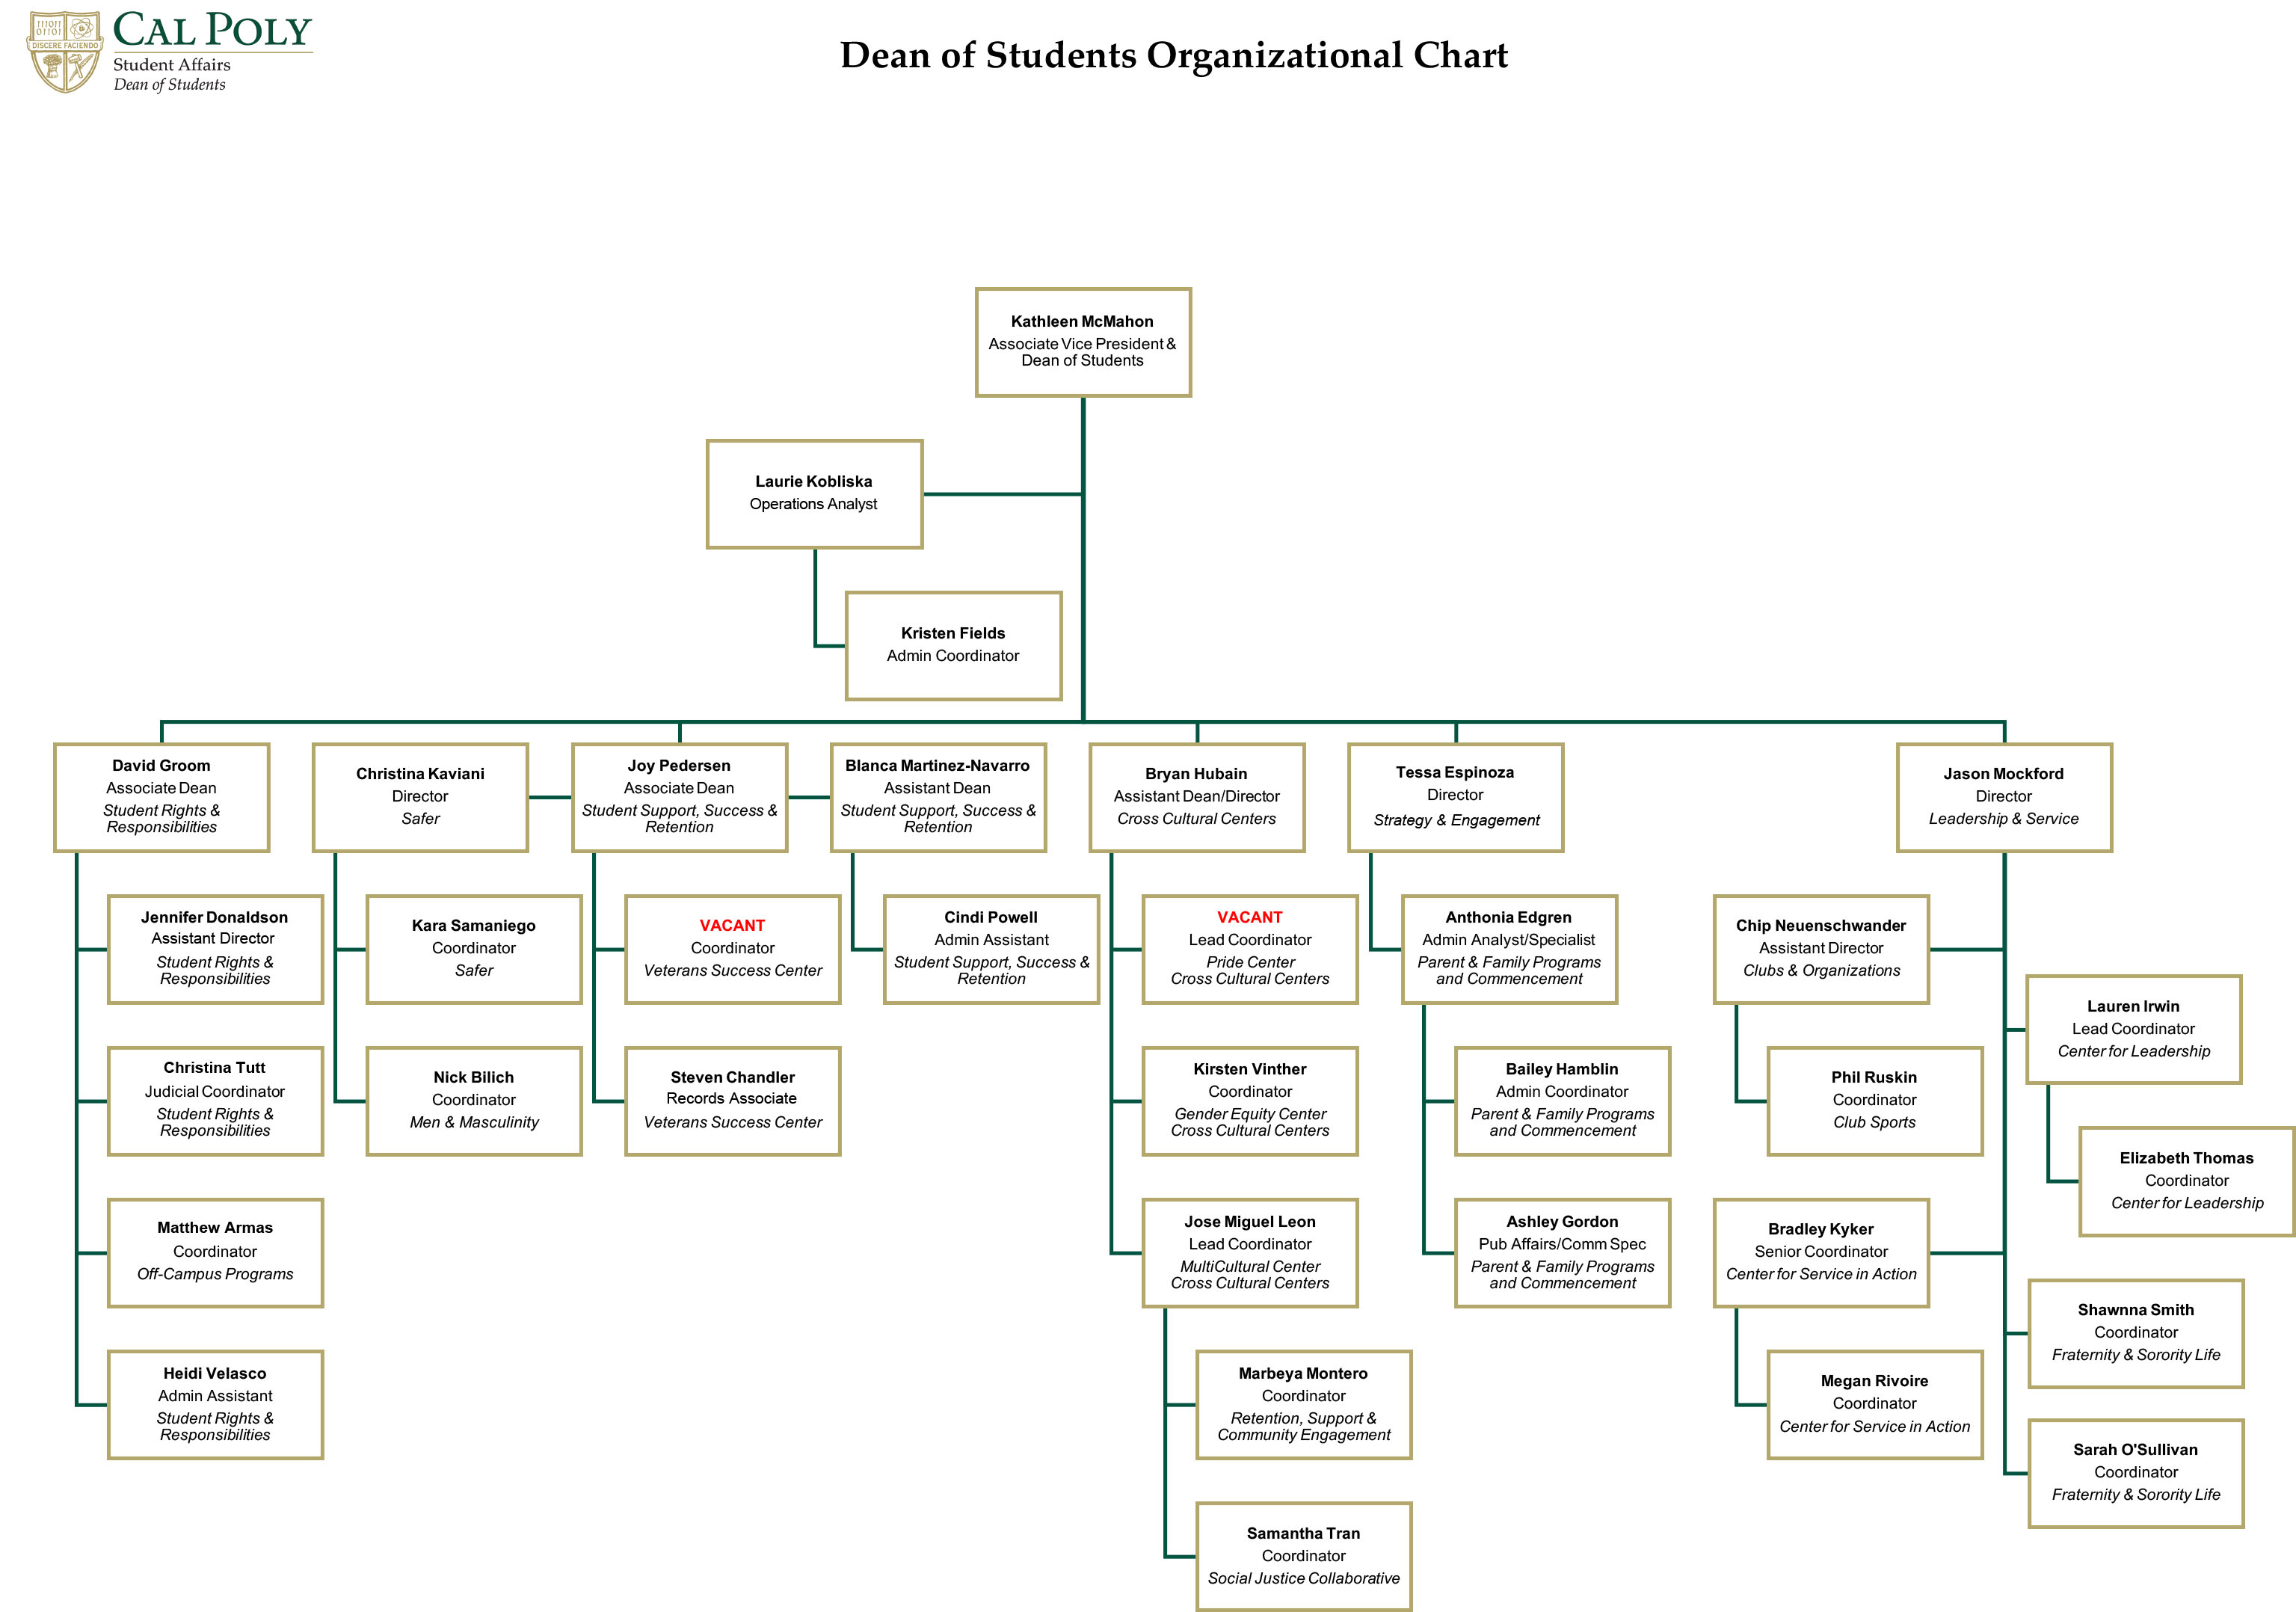 Dean of Students Organizational Chart